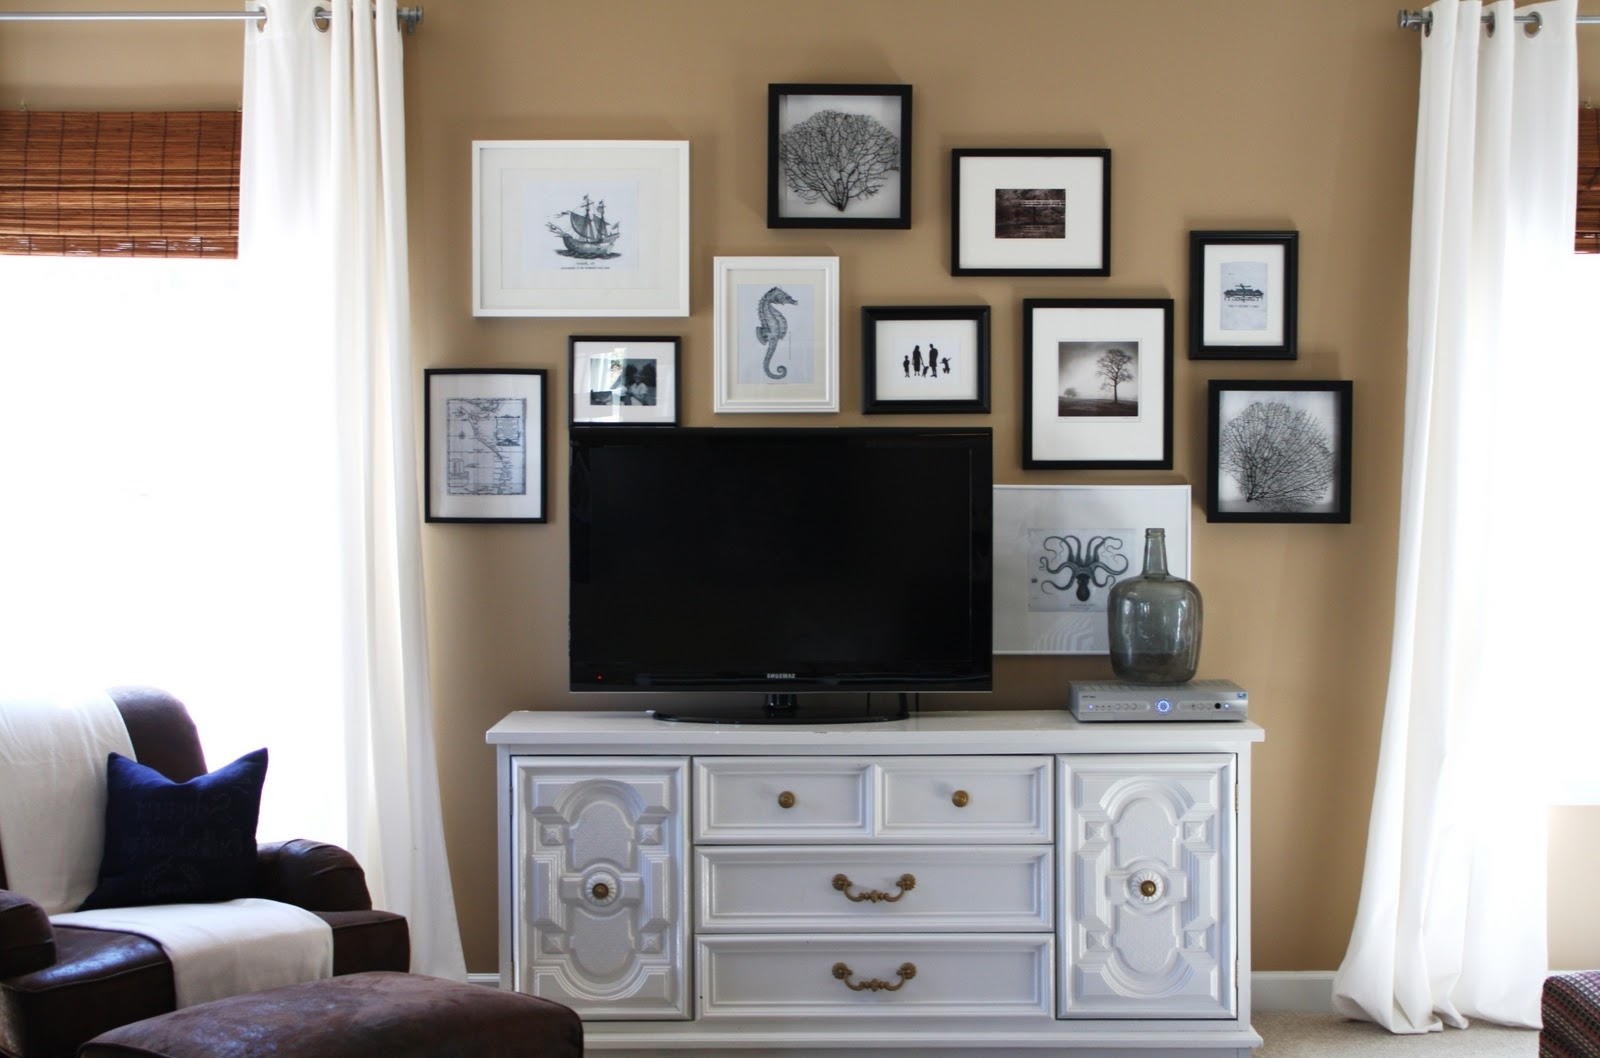 Lisa Mende Design: How To Decorate Around A Flat Screen Tv 40+ Decorating Living Room With Flat Screen Tv Inspirations